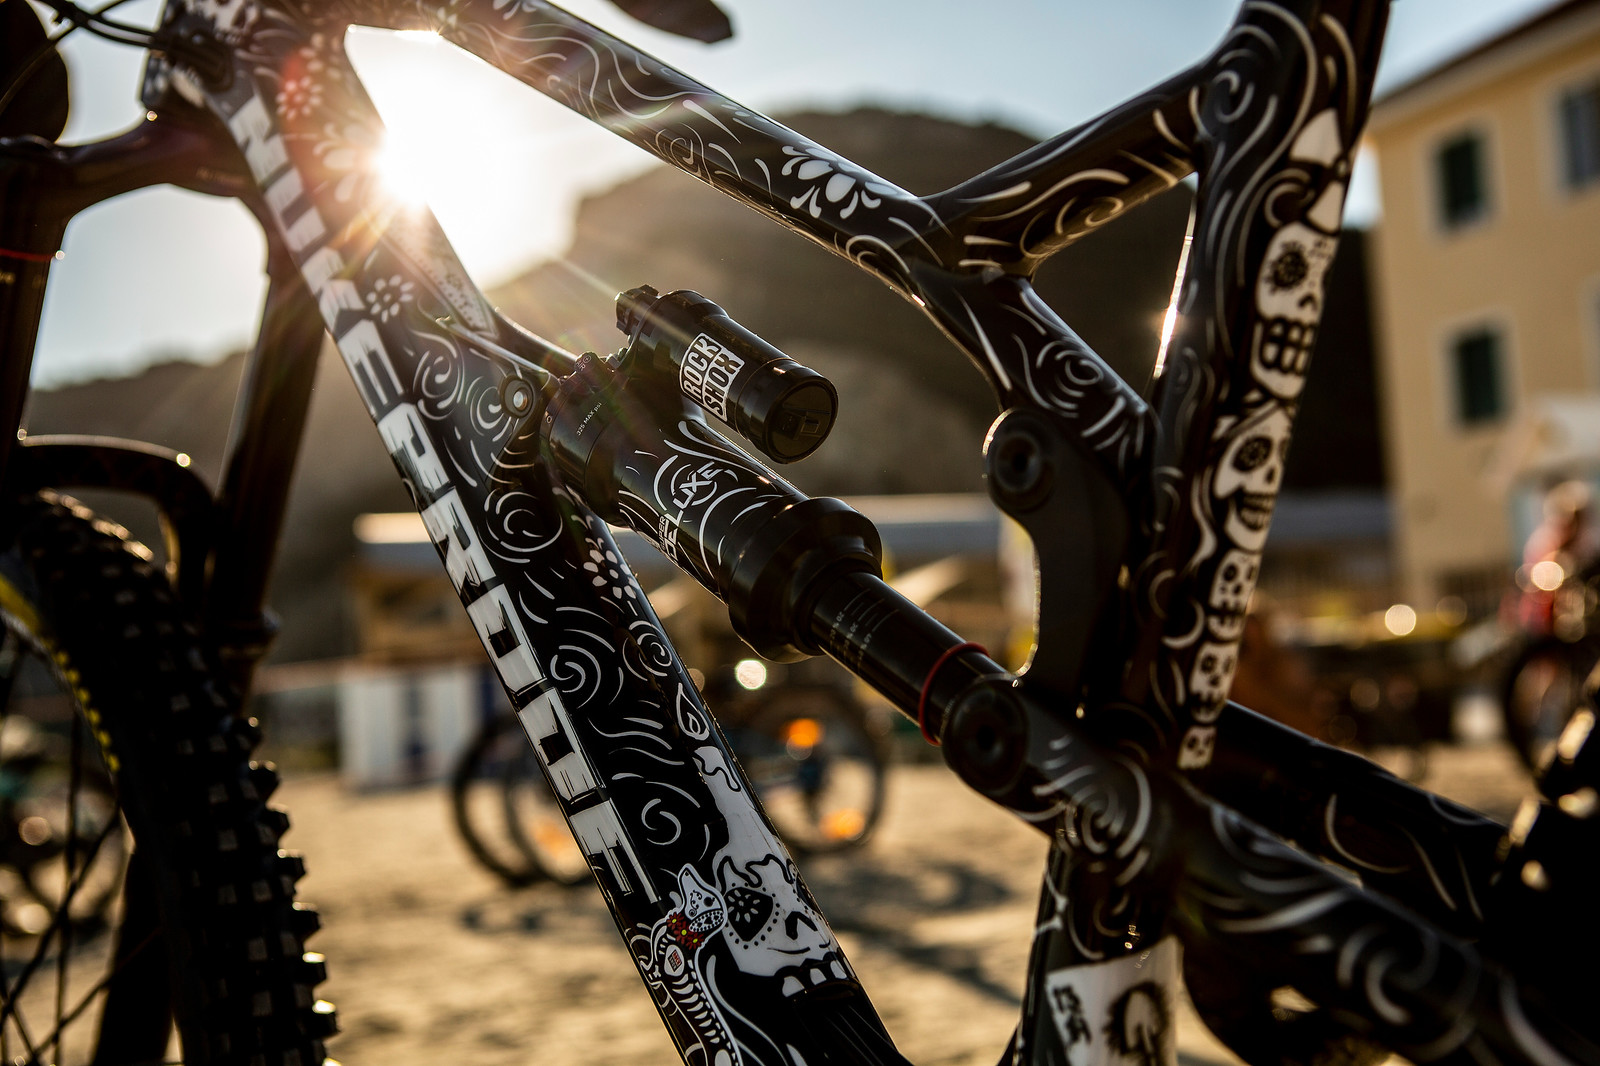 Sam's Nukeproof Mega - PIT BITS - Enduro World Series Finale - Mountain Biking Pictures - Vital MTB